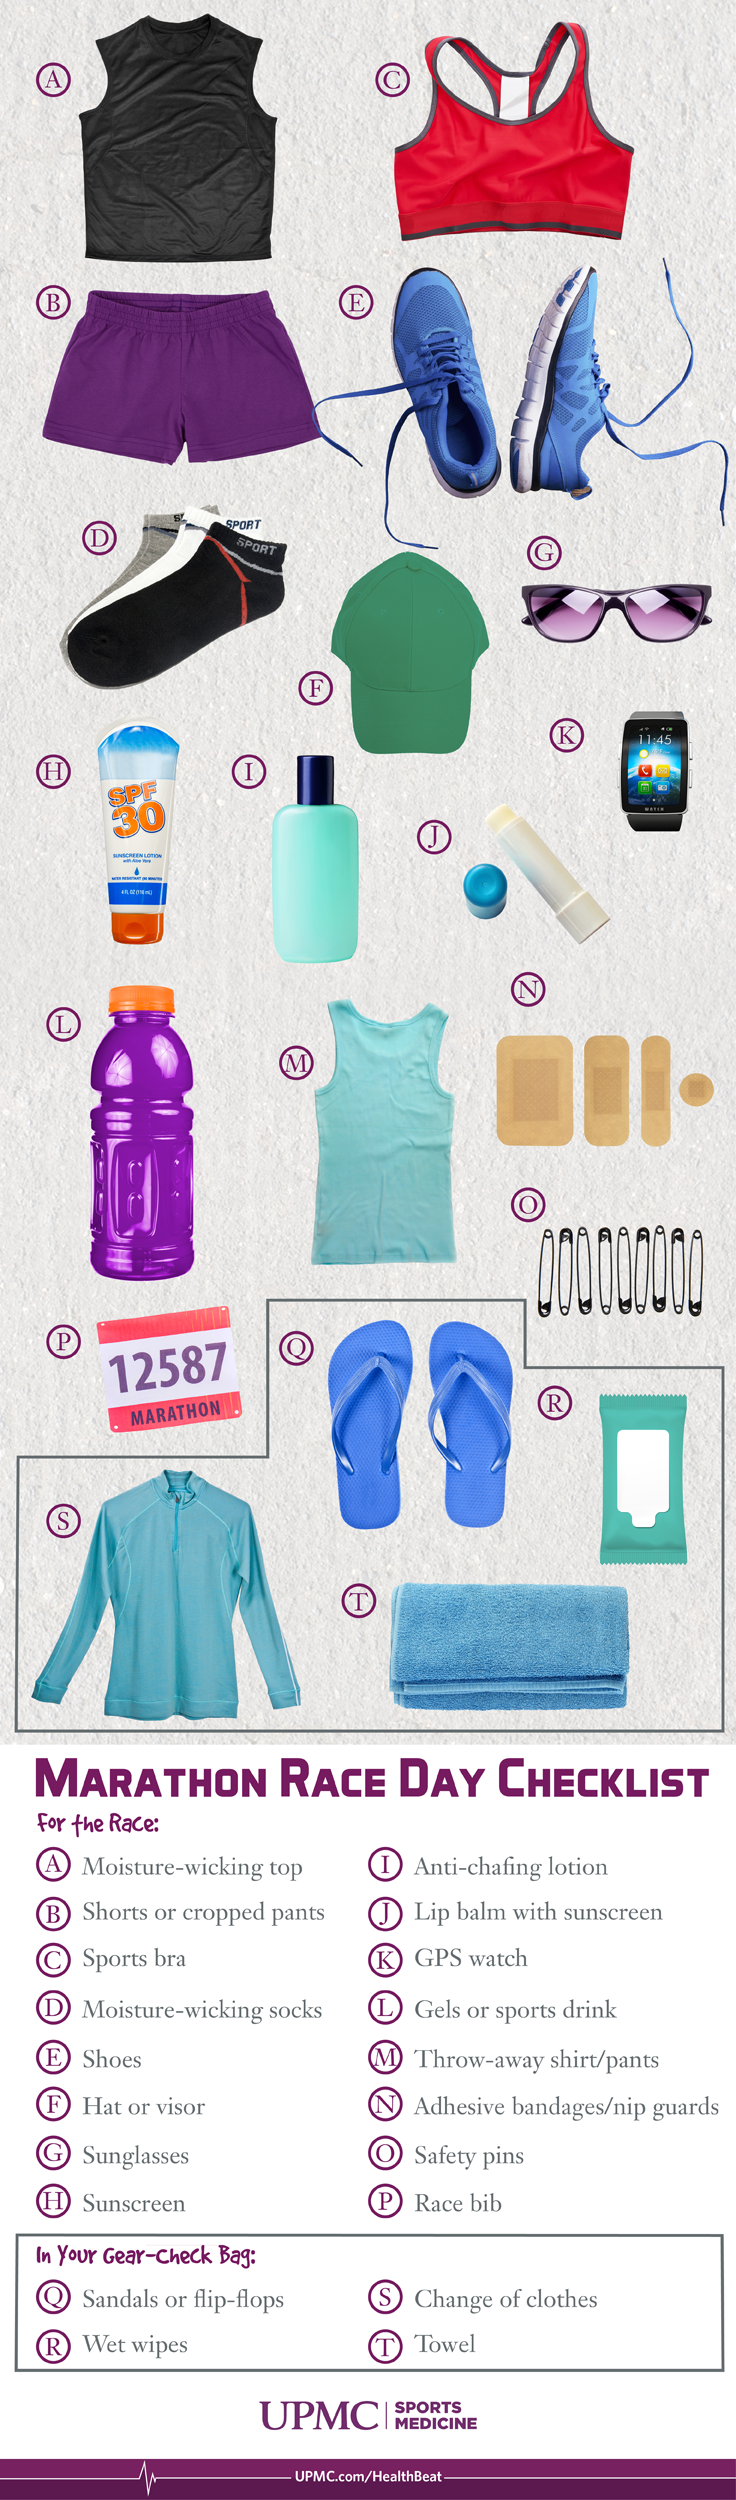 Marathon race day checklist